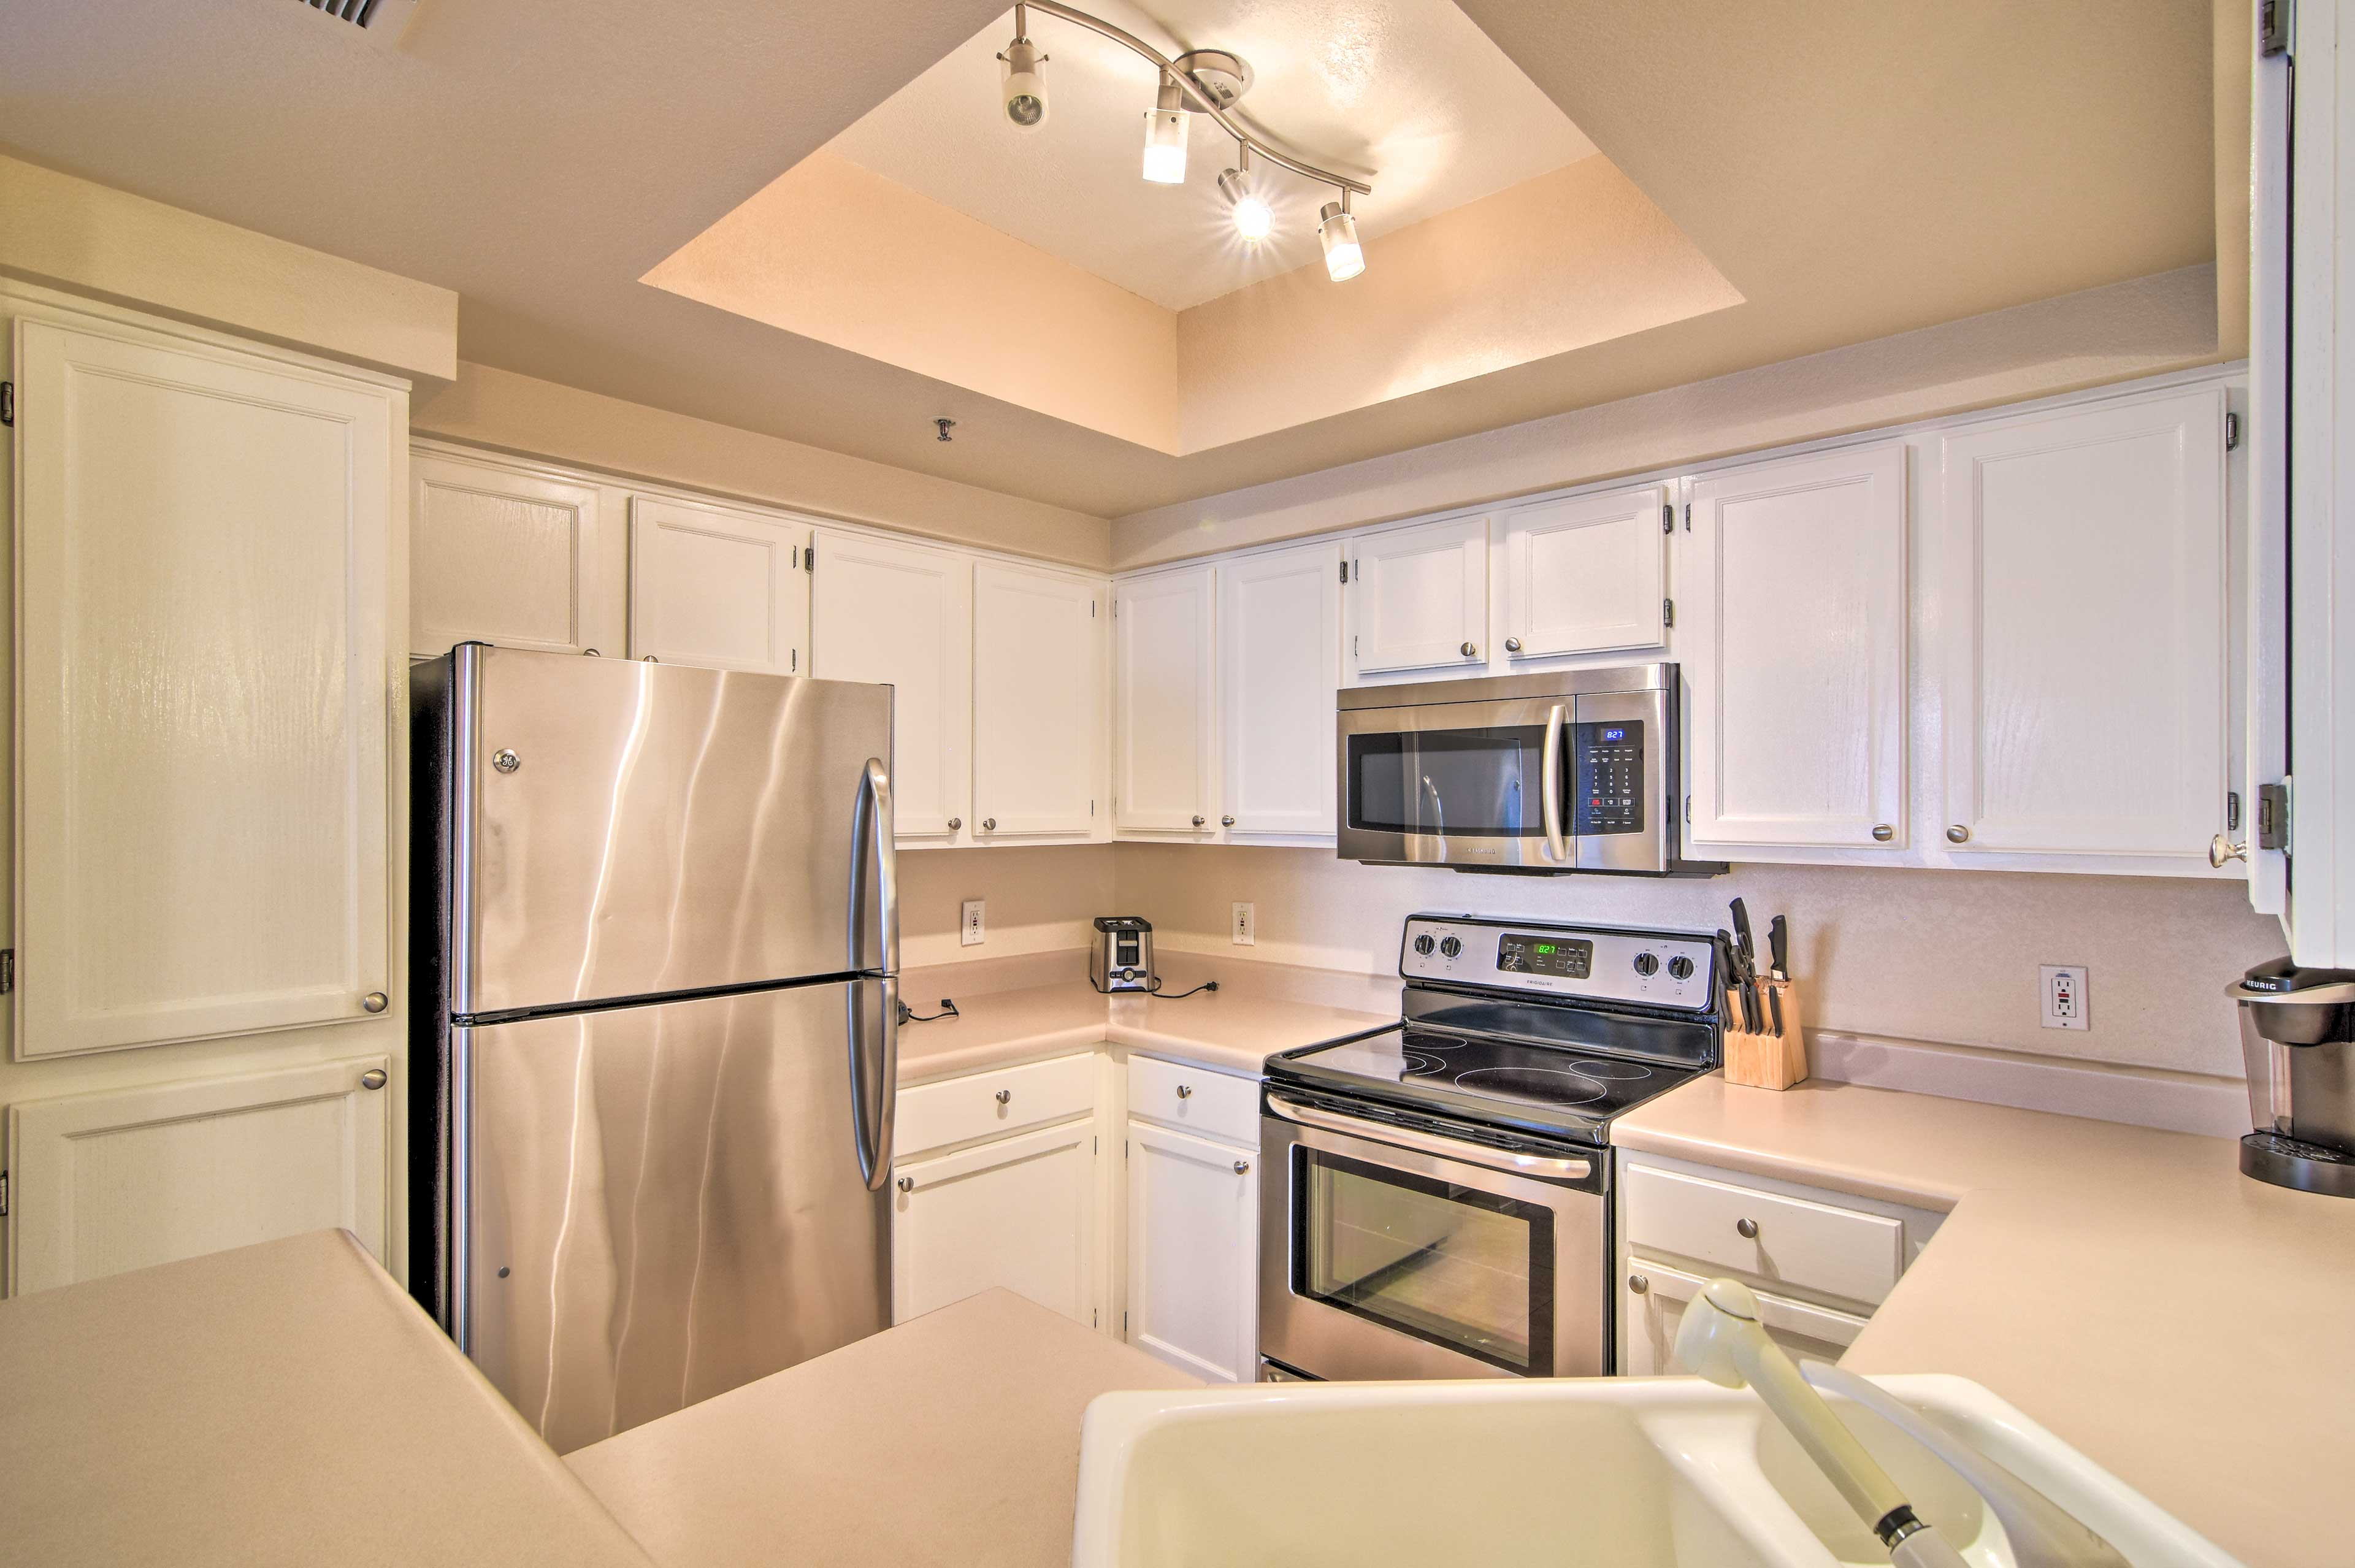 The stainless steel appliances will inspire delicious meals!